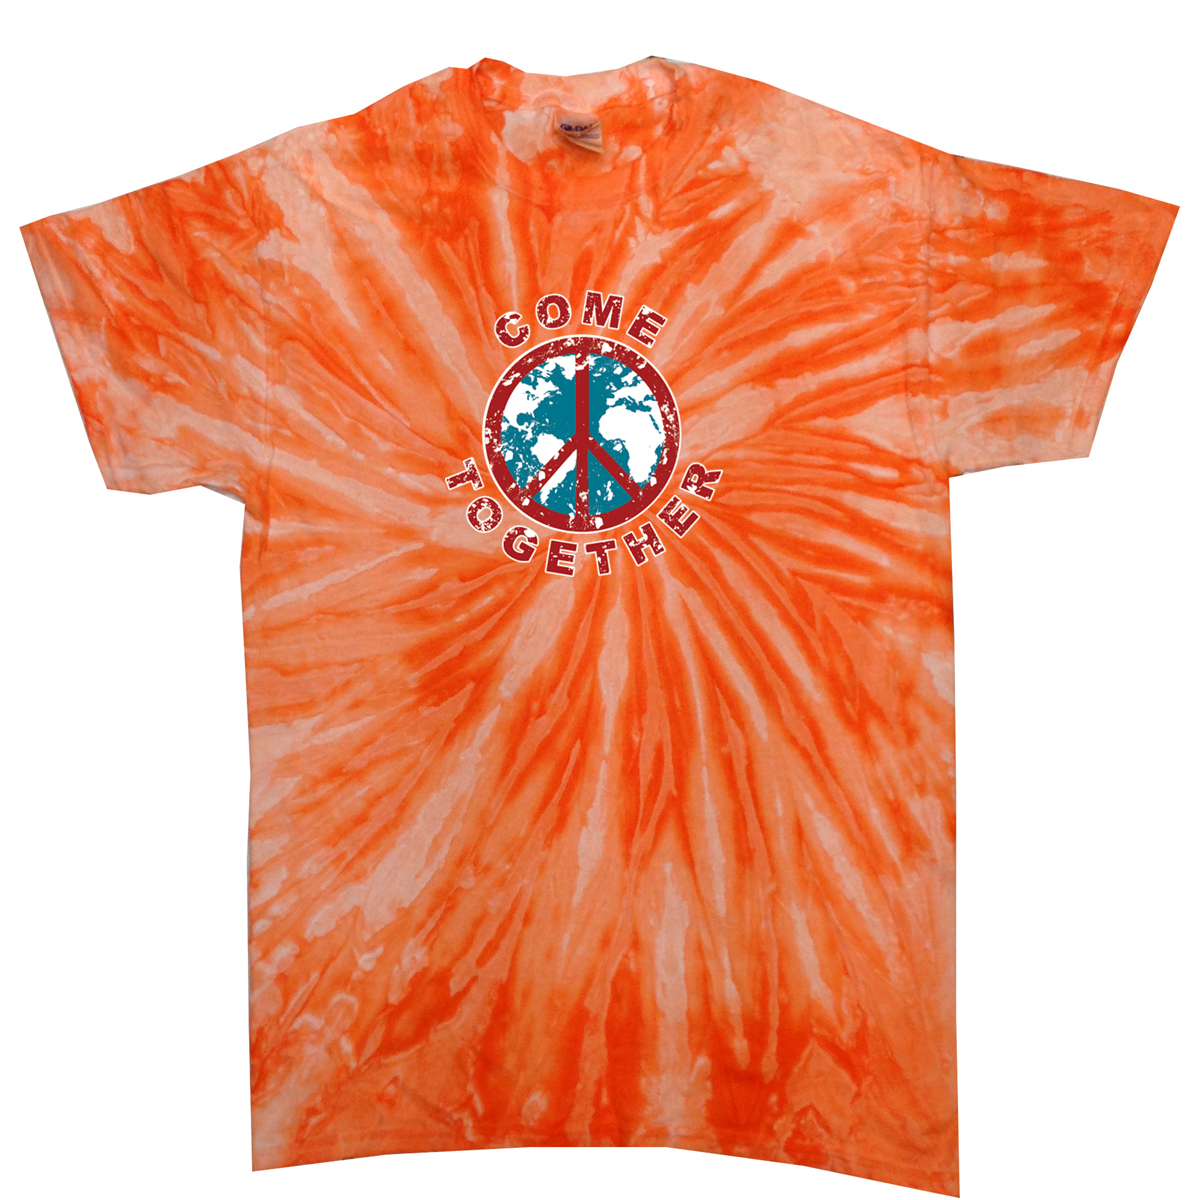 Kids peace tie dye shirt come together orange twist youth for Tie dye t shirt printing